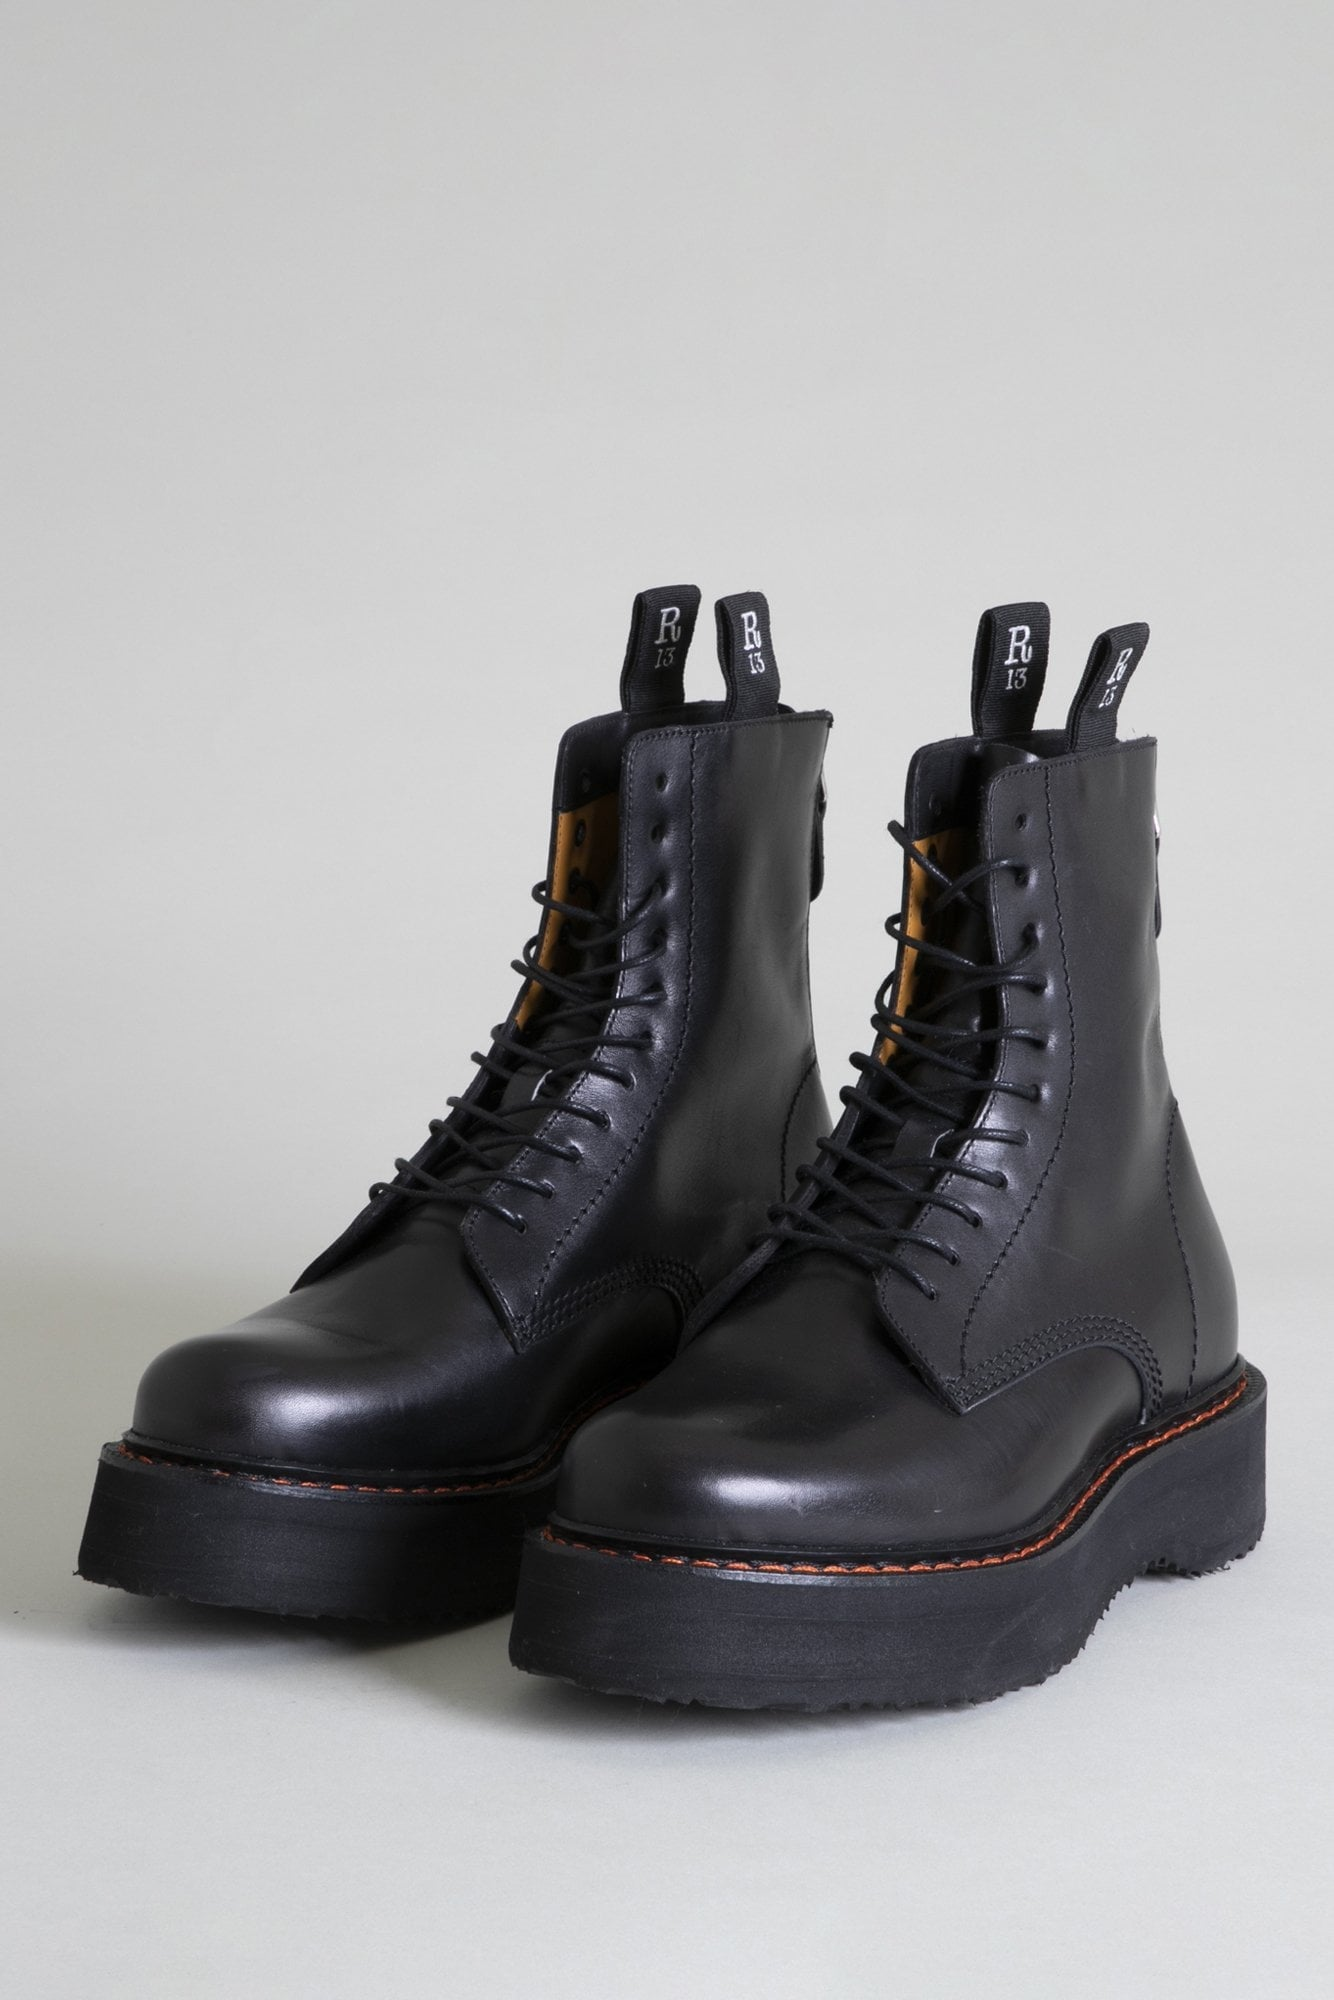 R13 Stack Boot